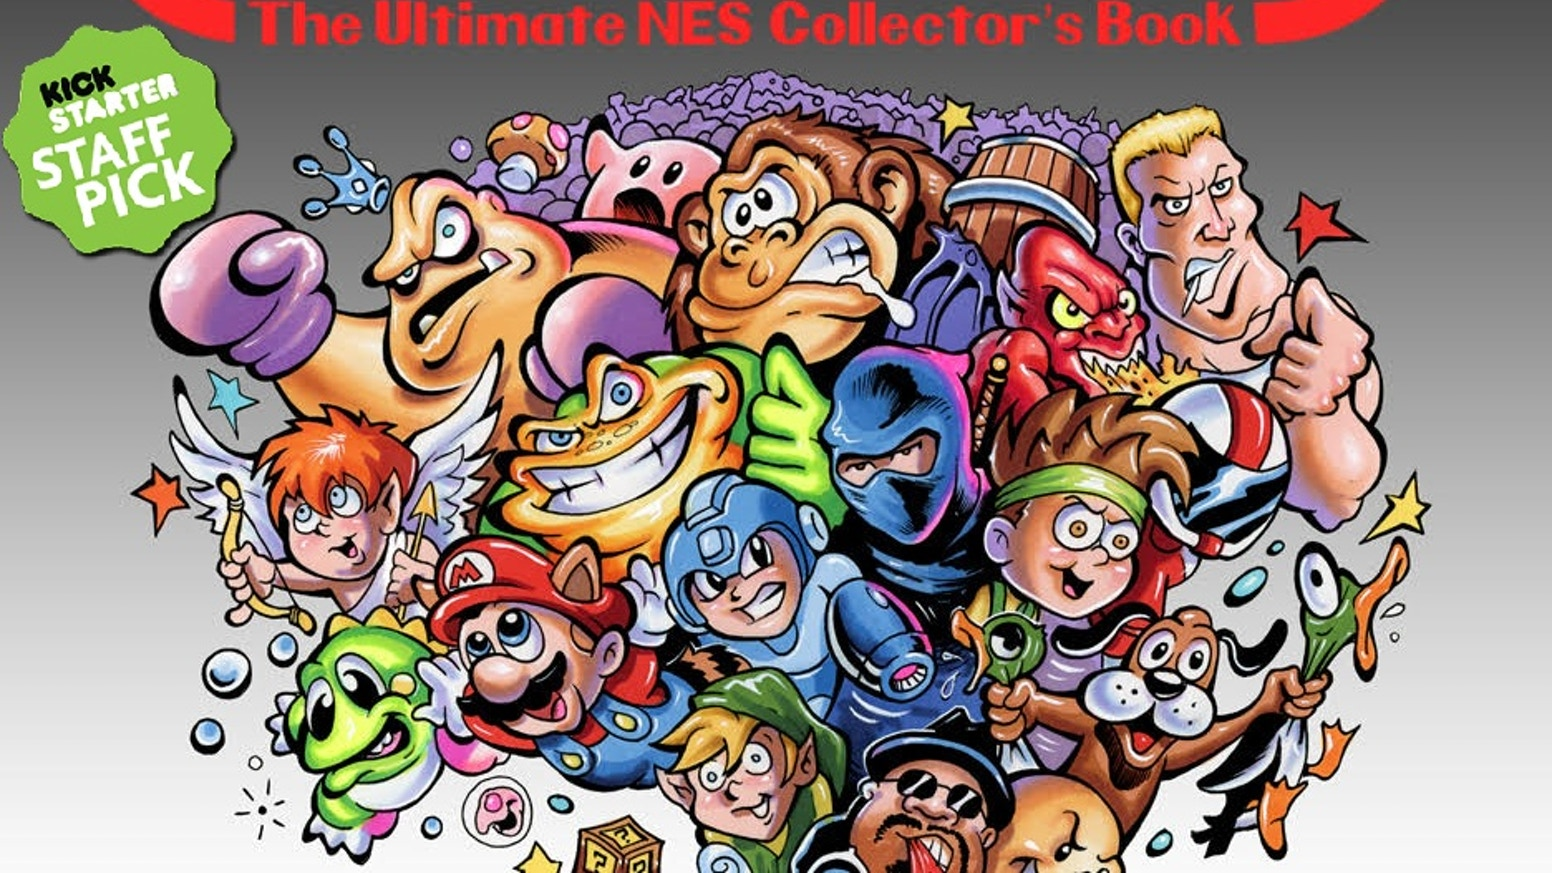 The Complete NES is a Comprehensive Nintendo Collector's Book & New Physical NES RPG Indie game with professional NES-themed artwork.